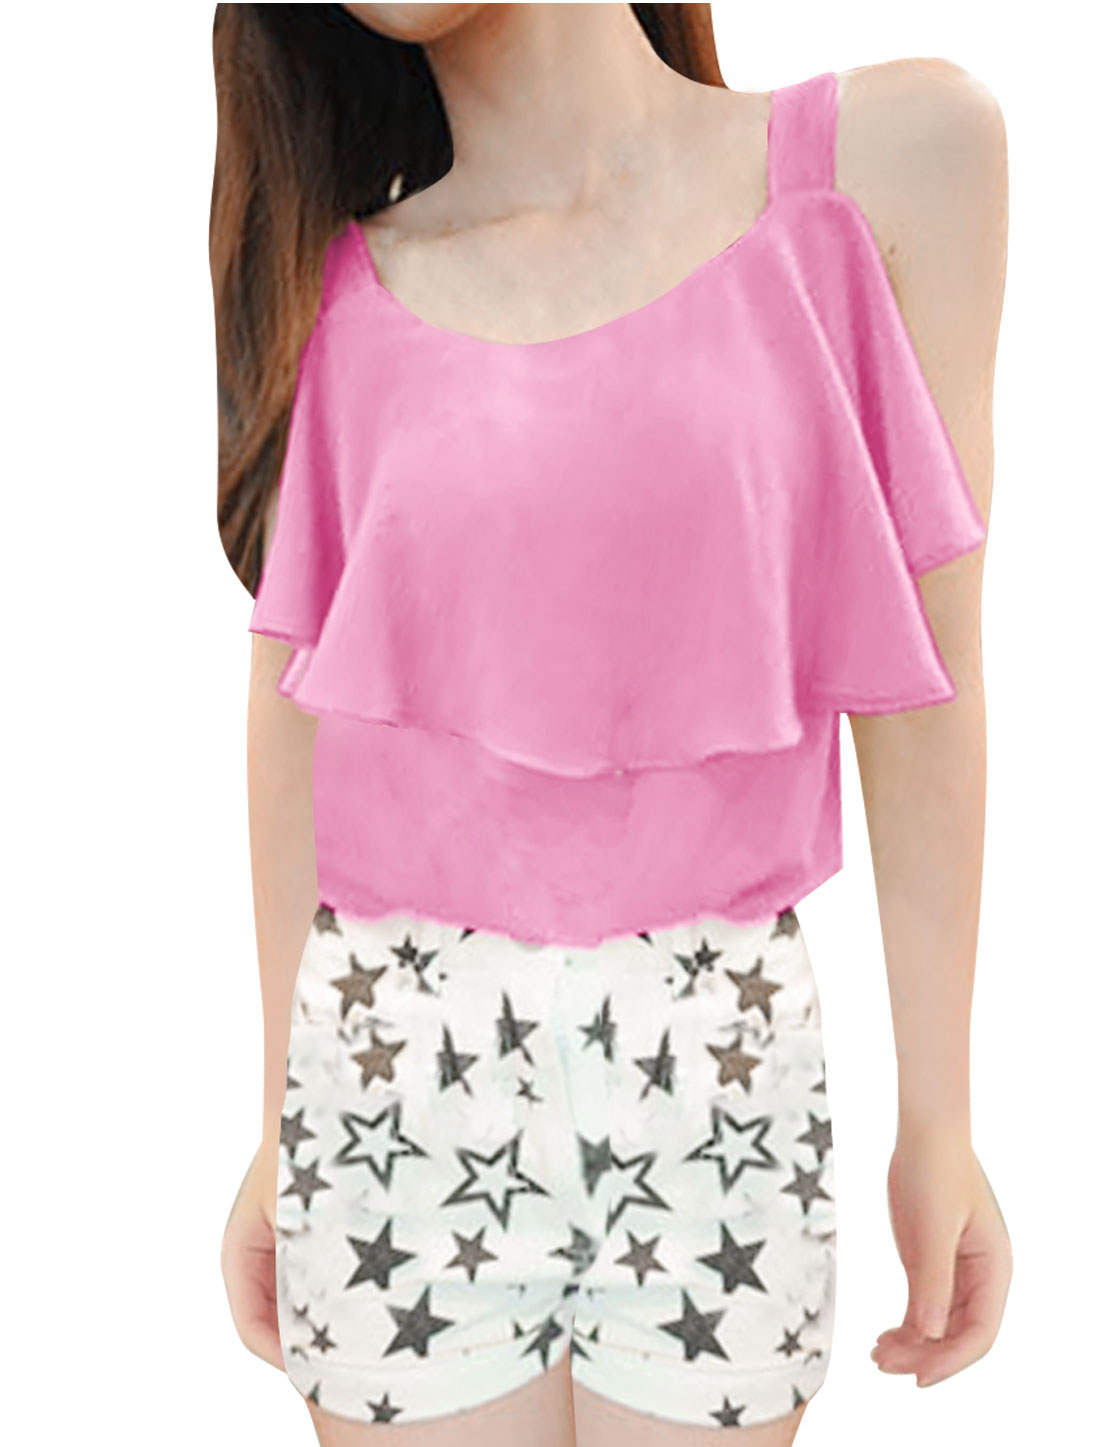 Lady XS Pink Round Neck Scalloped Summer Sexy Tank Top